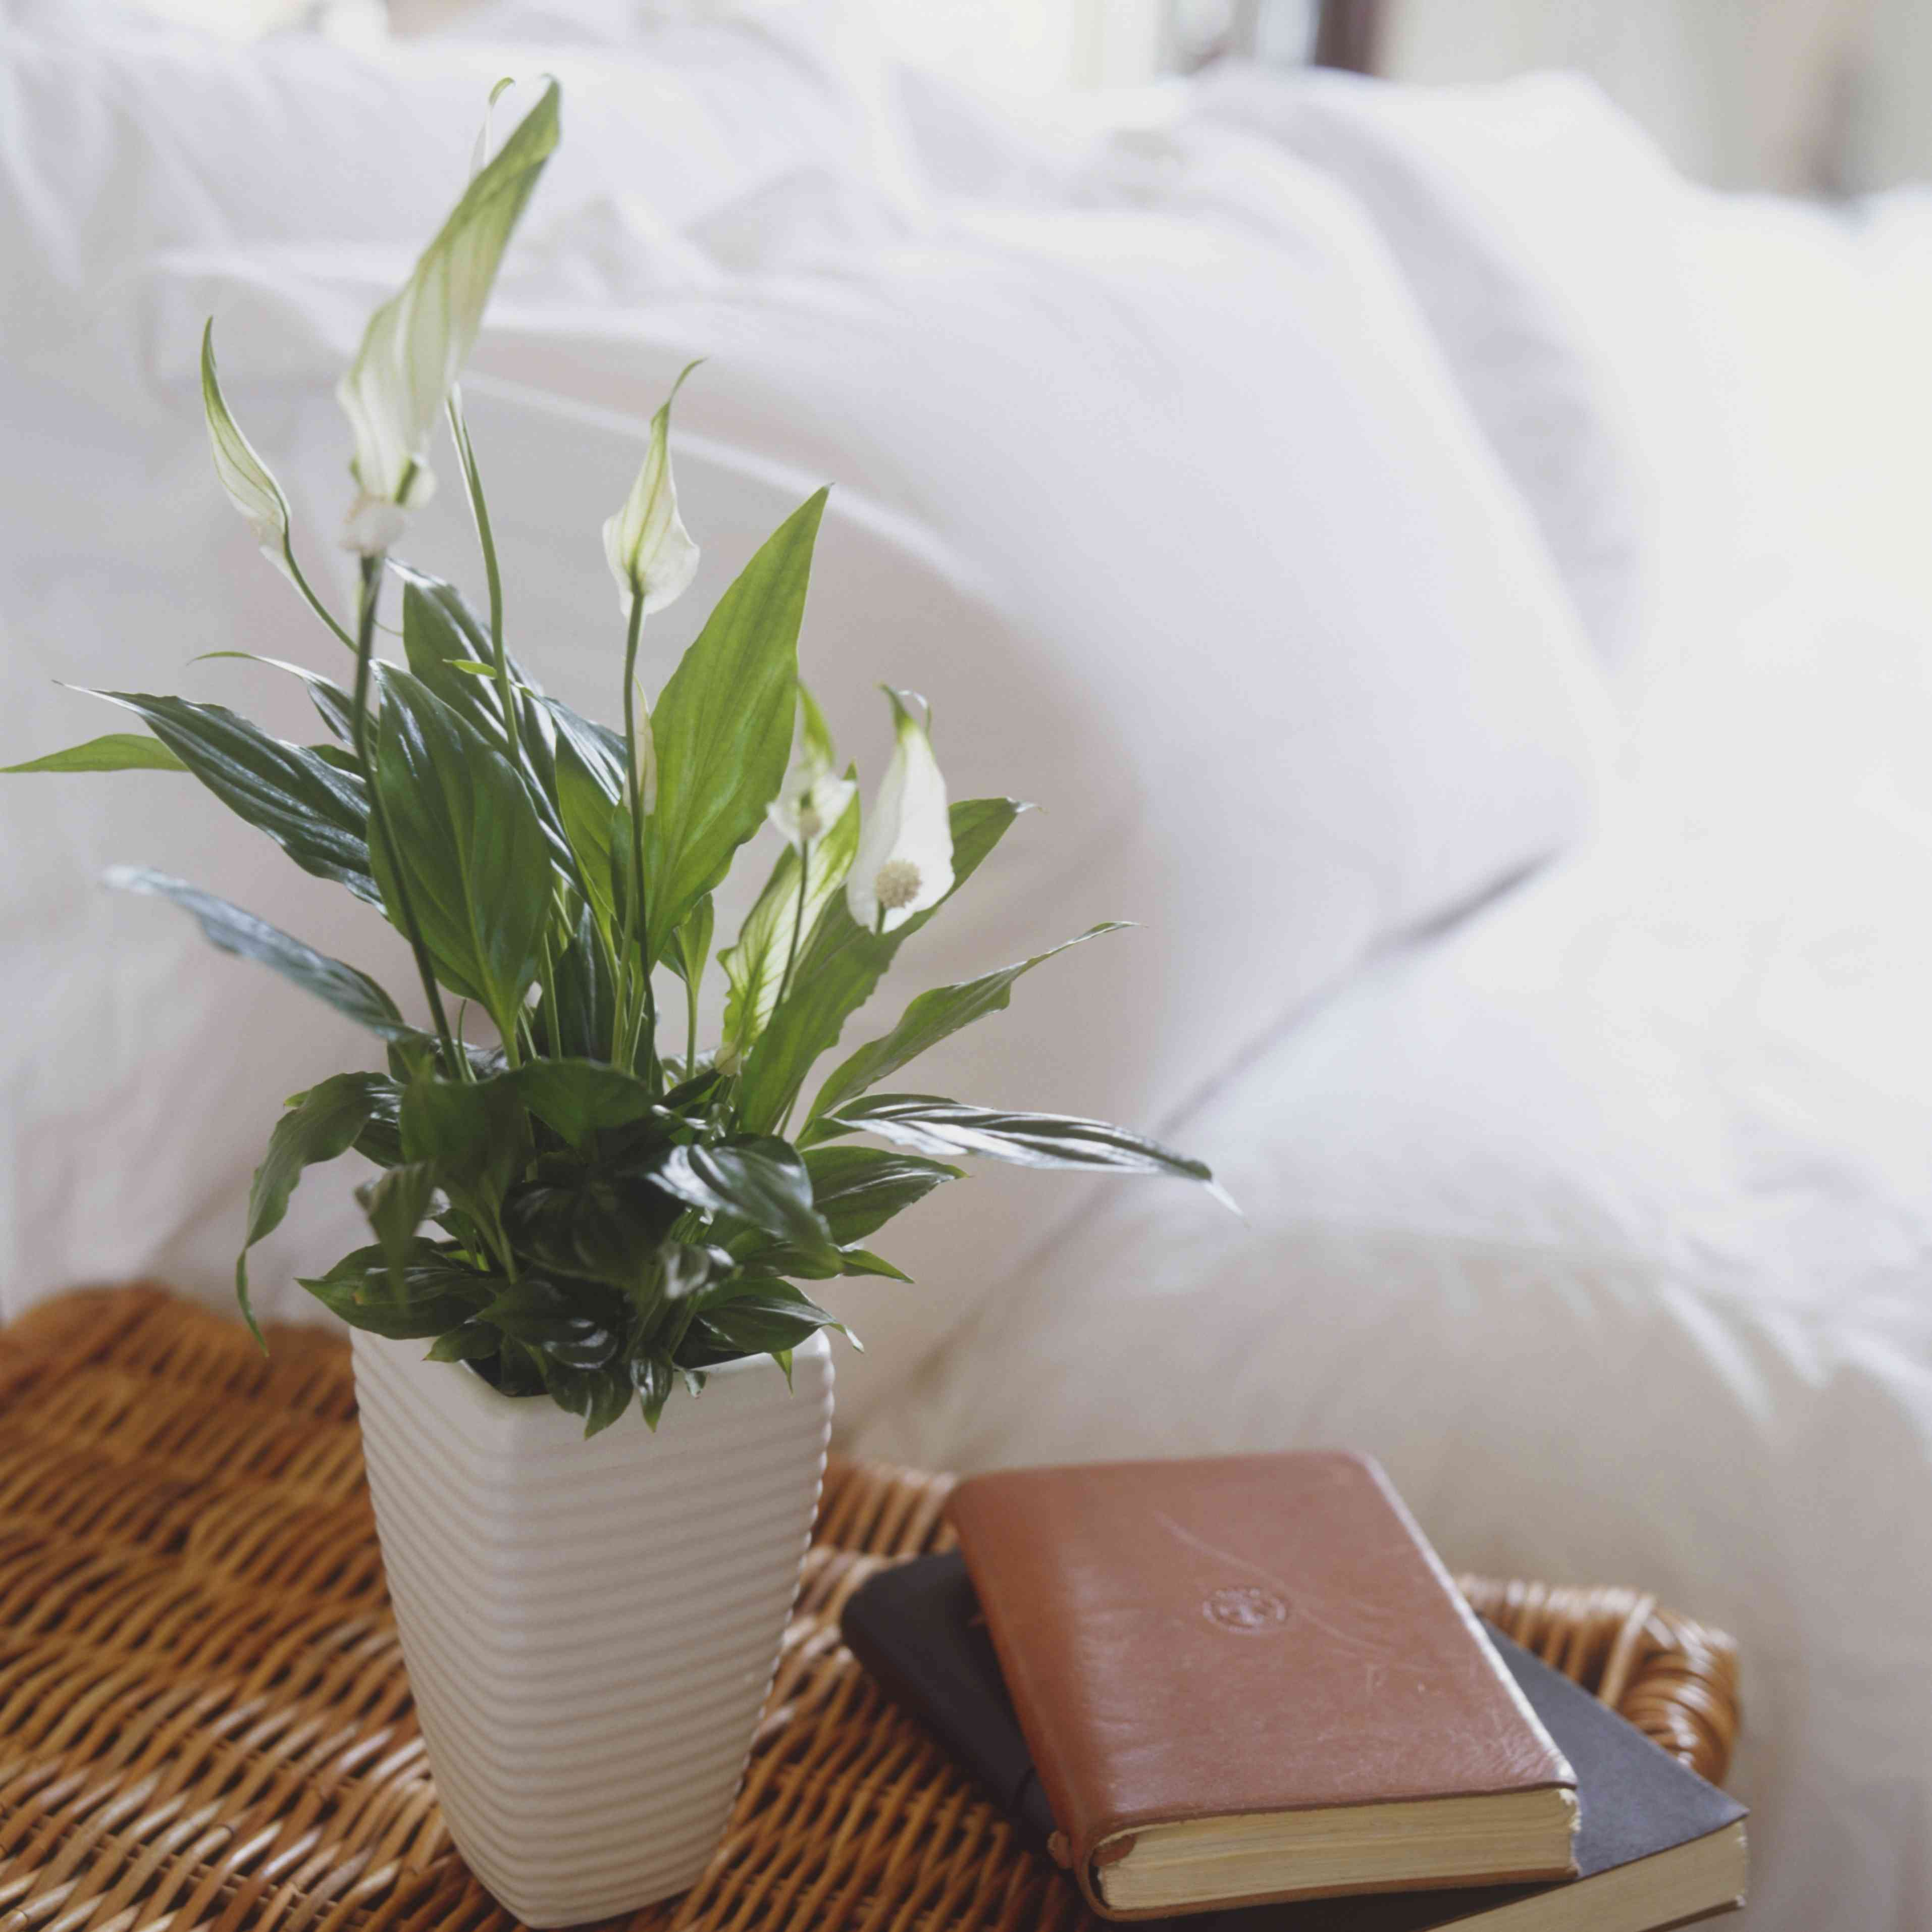 Peace lily with white flowers on bedside table